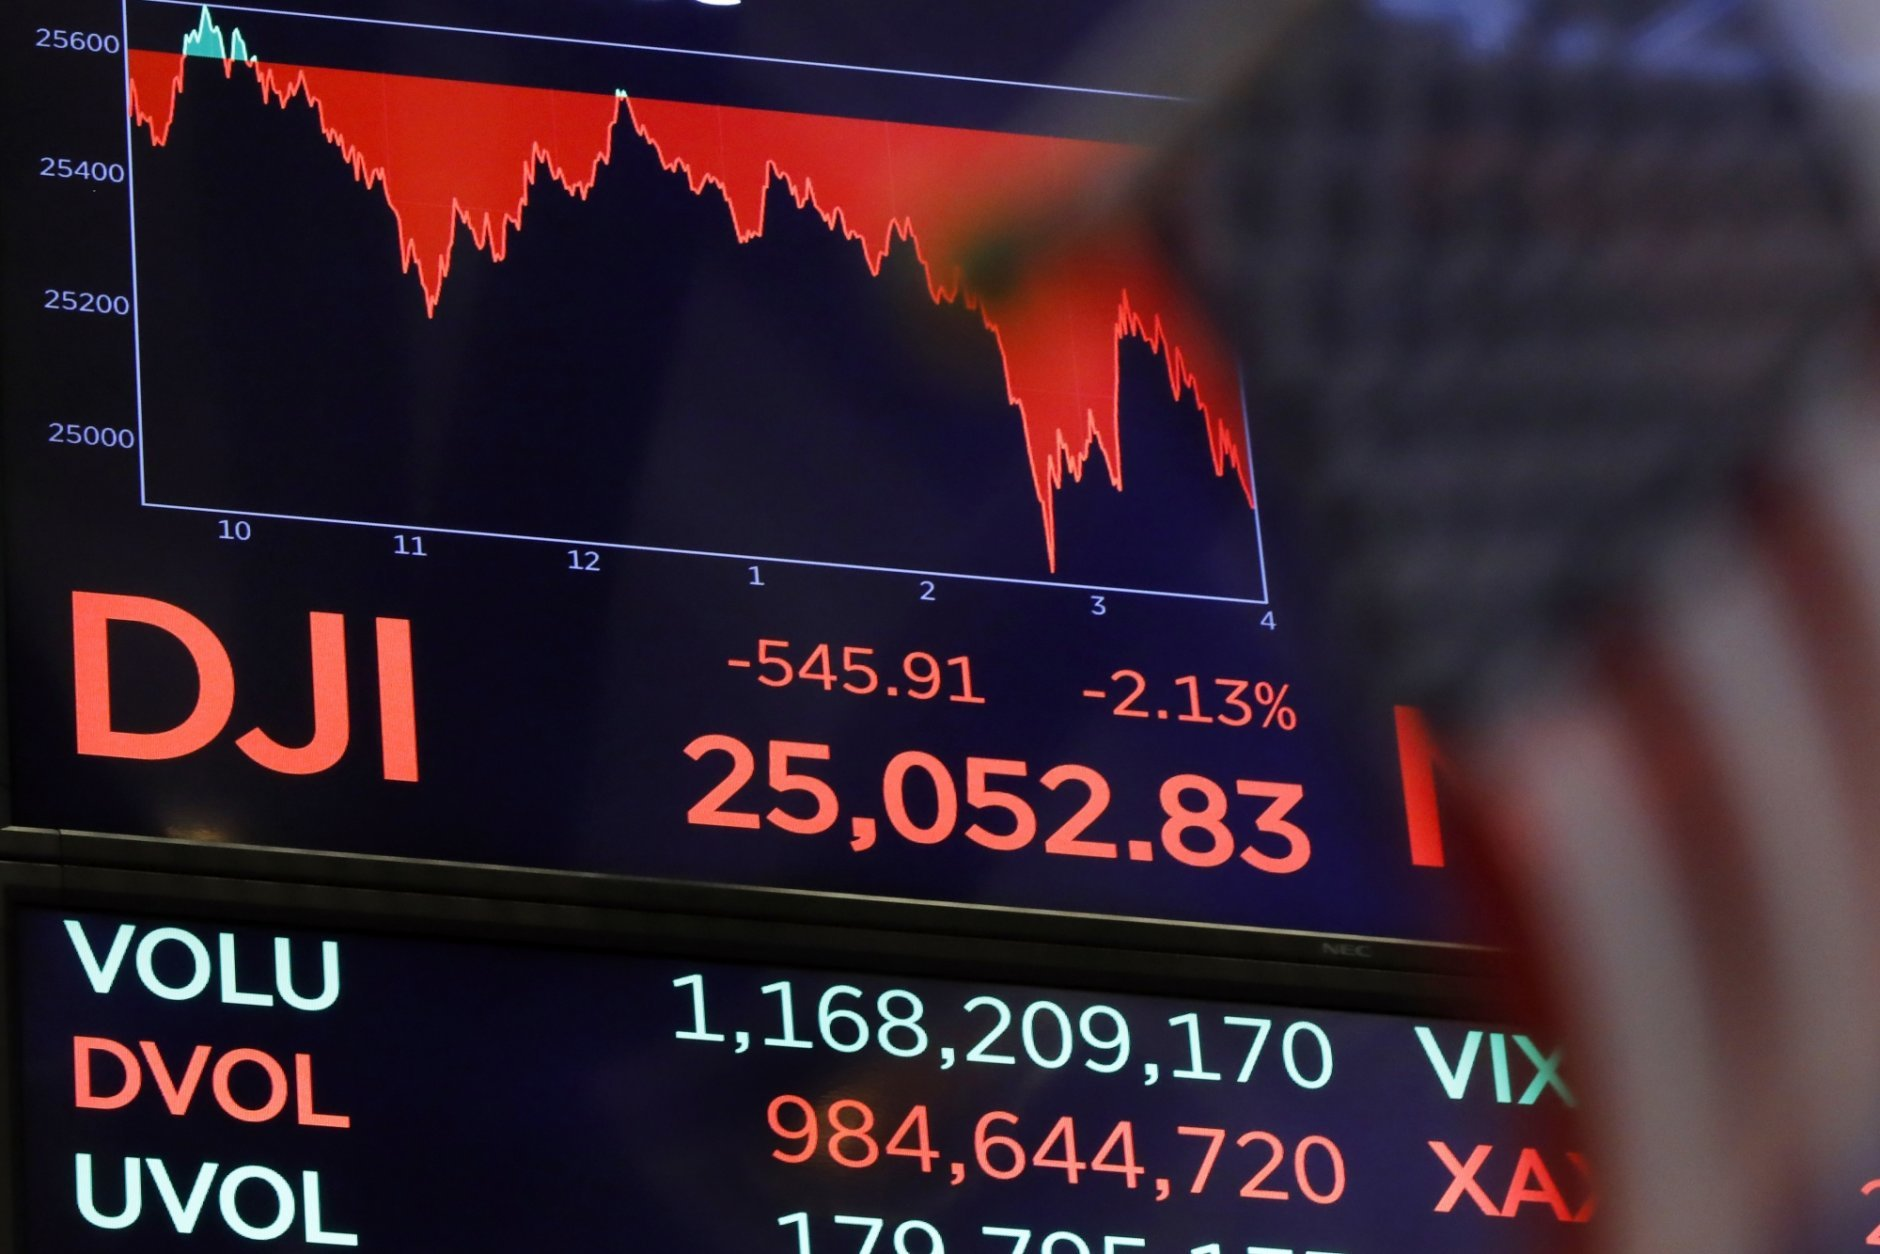 FILE- In this Oct. 11, 2018, file photo a board above the floor of the New York Stock Exchange shows the closing number for the Dow Jones industrial average. A period of relative calm on Wall Street that led to a milestone-setting September for the stock market came to a sudden, screeching halt in October. The slide snapped a six-month winning streak for the benchmark S&P 500 index, with October clocking in as the worst month for the market since September 2011. (AP Photo/Richard Drew, File)